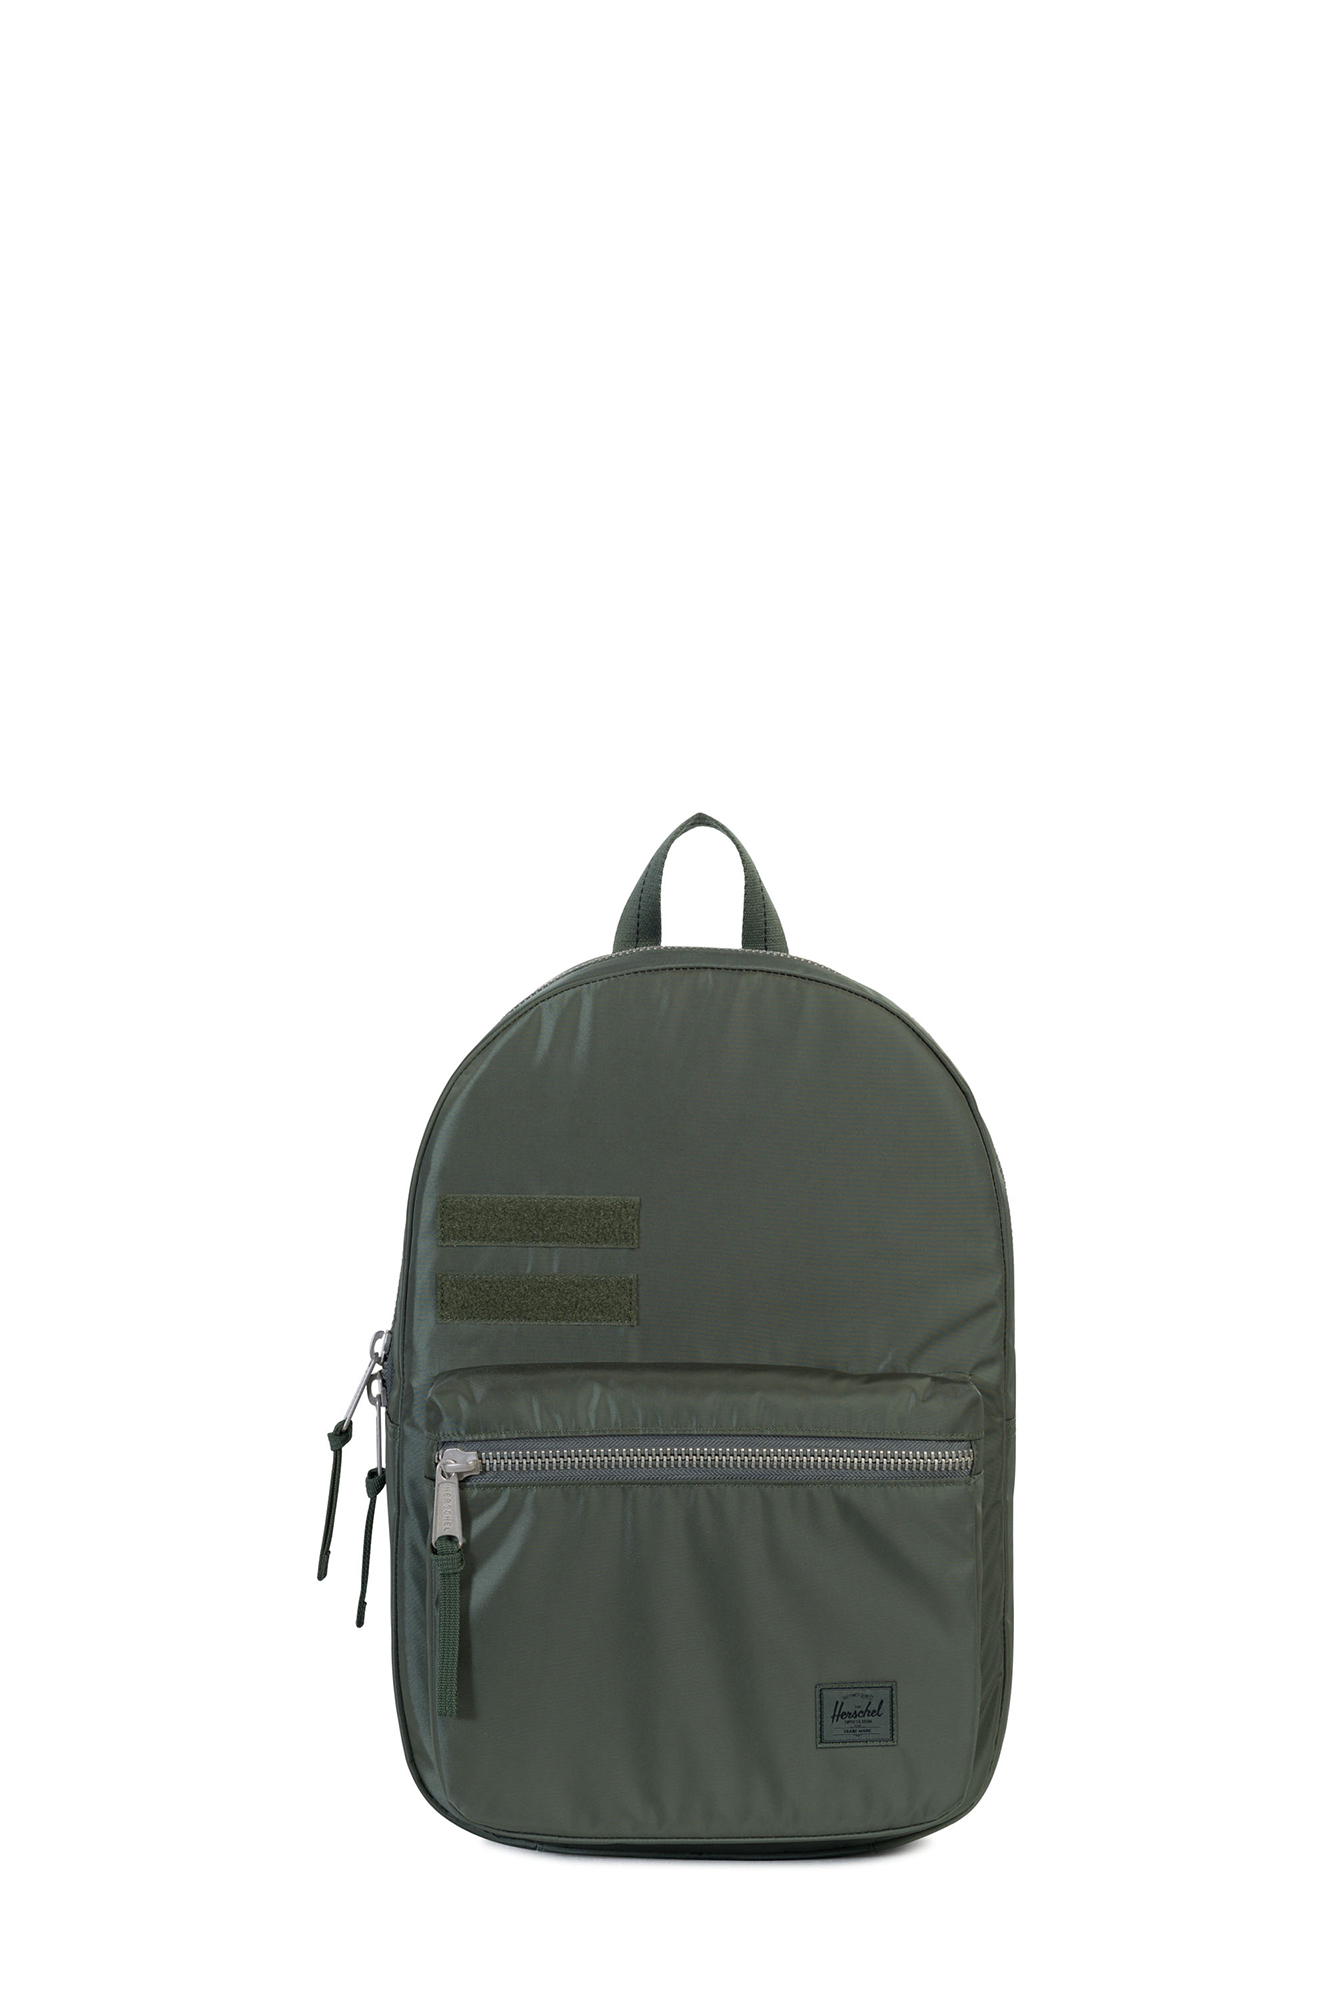 Herschel - Lawson Surplus Beetle backpack